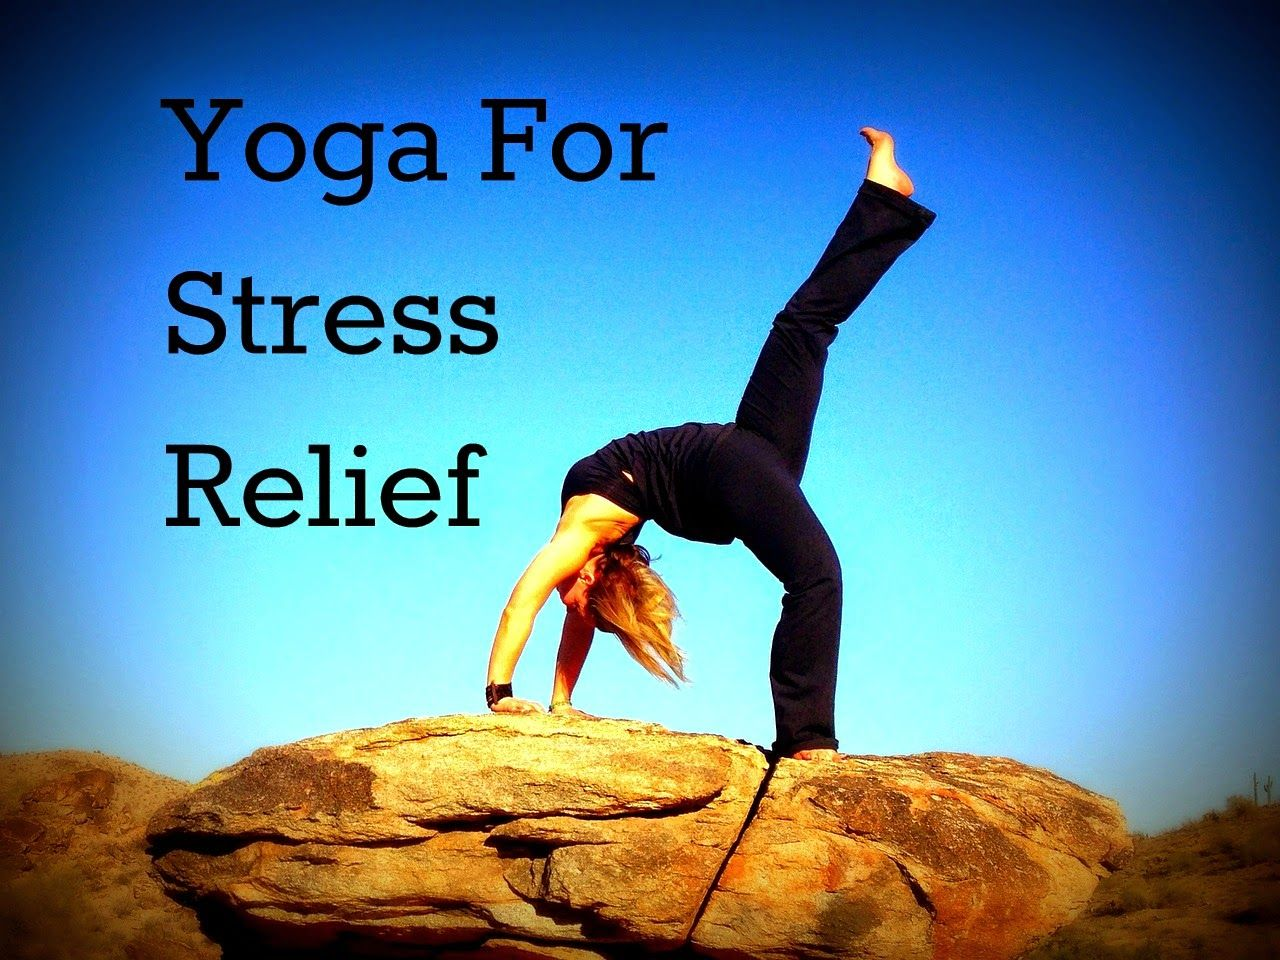 #Yoga For #StressRelief and #StressManagement  #NaturalHealth #HealthyLiving #SelfCare #YogaLifestyle